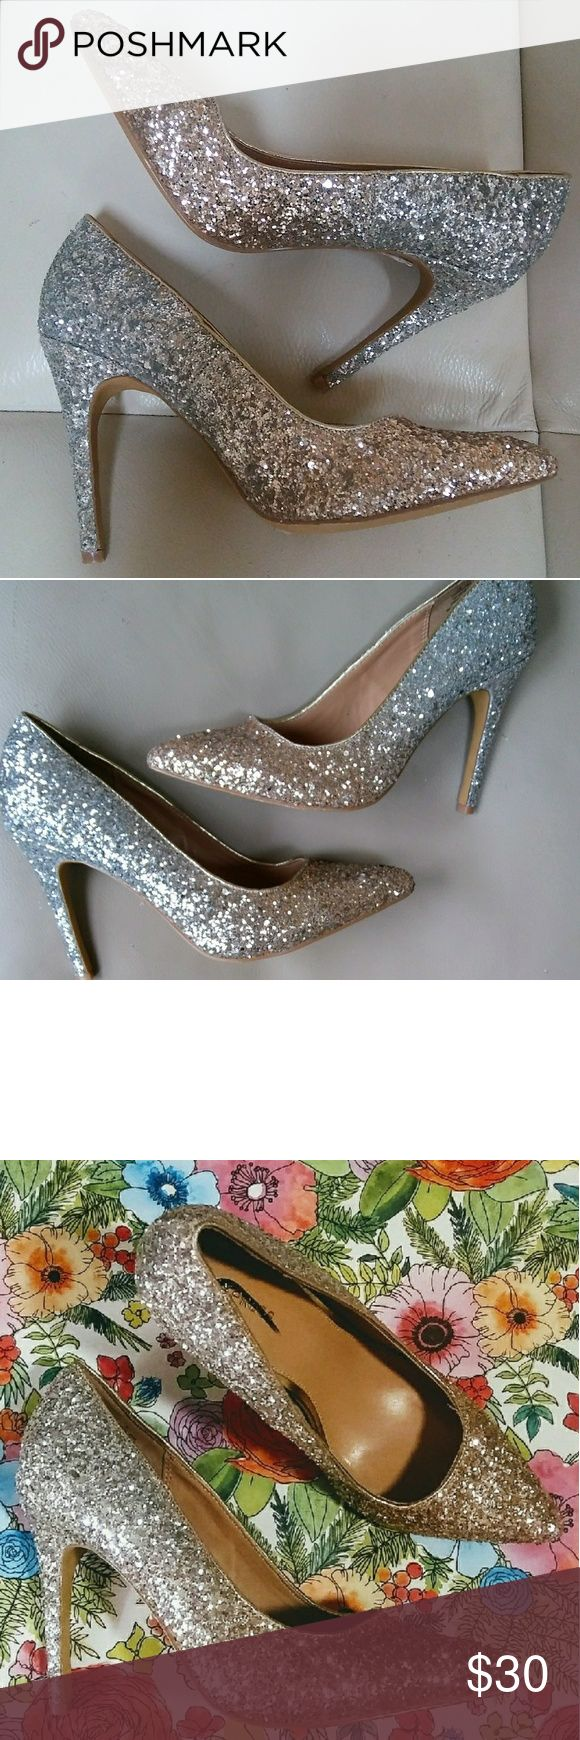 """⭐GOLD & SILVER⭐ Glitter Heels by Express - Size 6 SALE!!!  ✨Glisten shimmer SHINE glimmer ✨in your EXPRESS glitter party-pumps.  To of the shoe is gold glitter that ombré blends into a silver heel.. Very fun, head turning heels. Wear them with skinny jeans and fun earrings for a pop of shine.. *Purchased at a discount retailer. The brand name """"Express"""" has been crossed out and there is a tiny indentation in the interior of the shoe (see photos) Otherwise they are in excellent condition and…"""